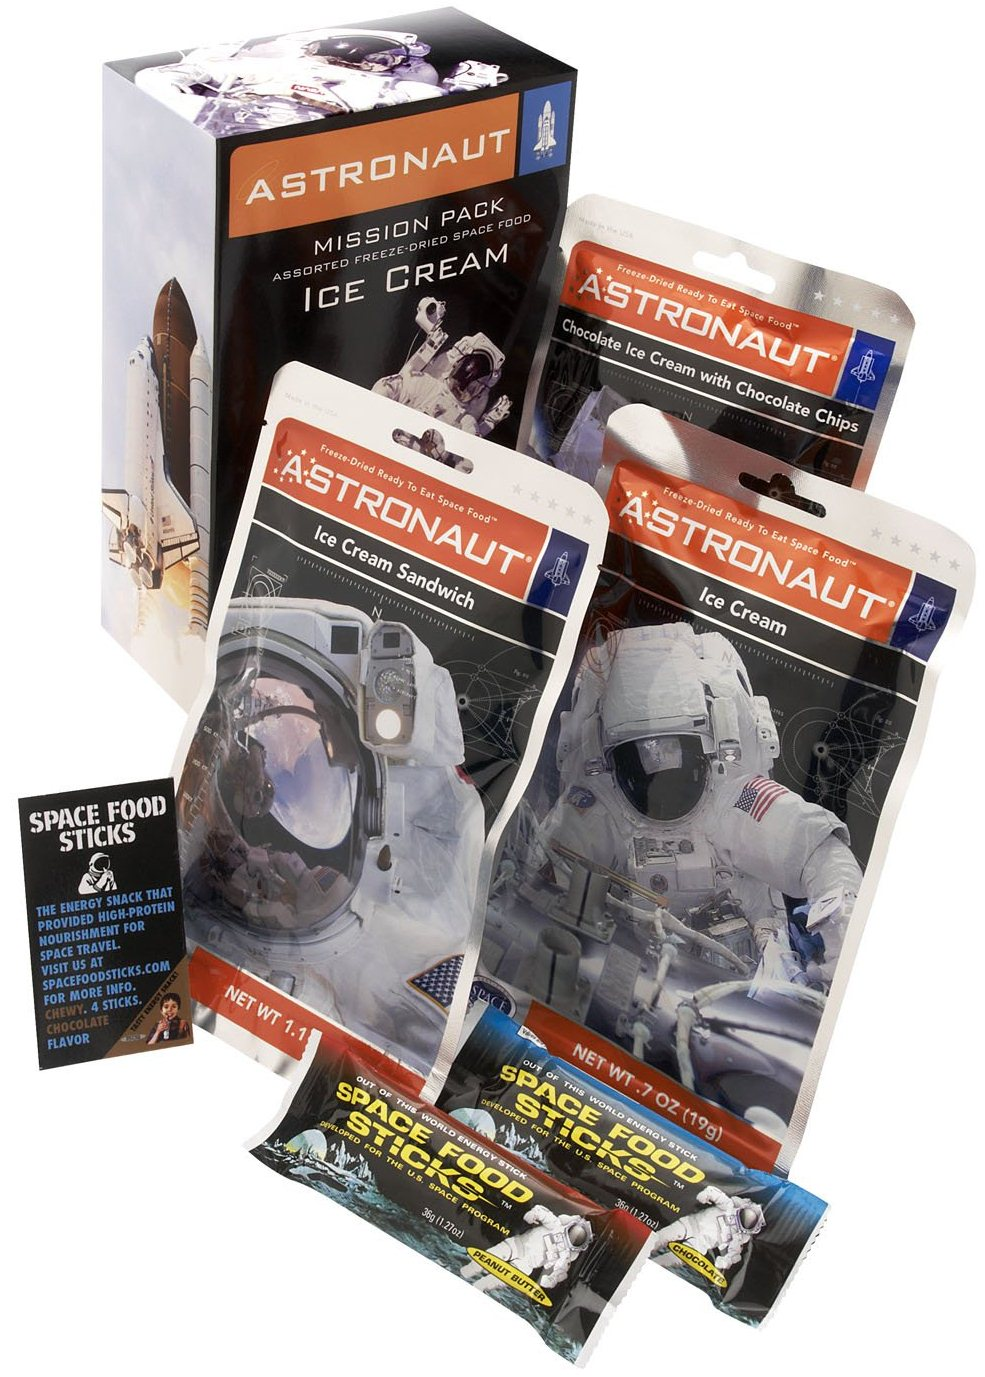 Best NASA Gift Idea Mission Pack Astronaut Food Sampler Pack